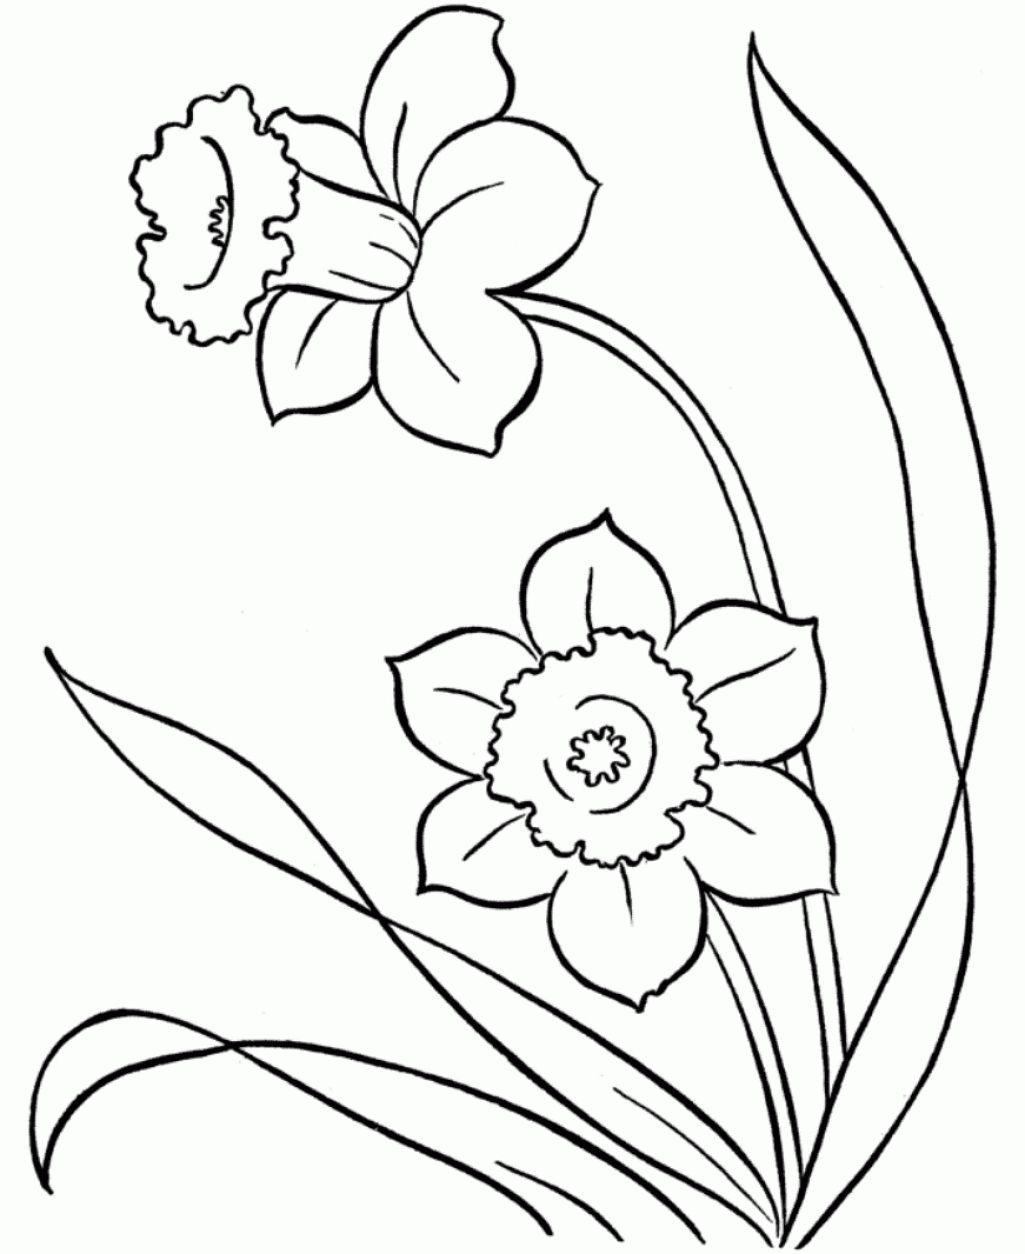 1025x1254 Cool Snowdrop Coloring Pages Line Drawings Of Snowdrops Google